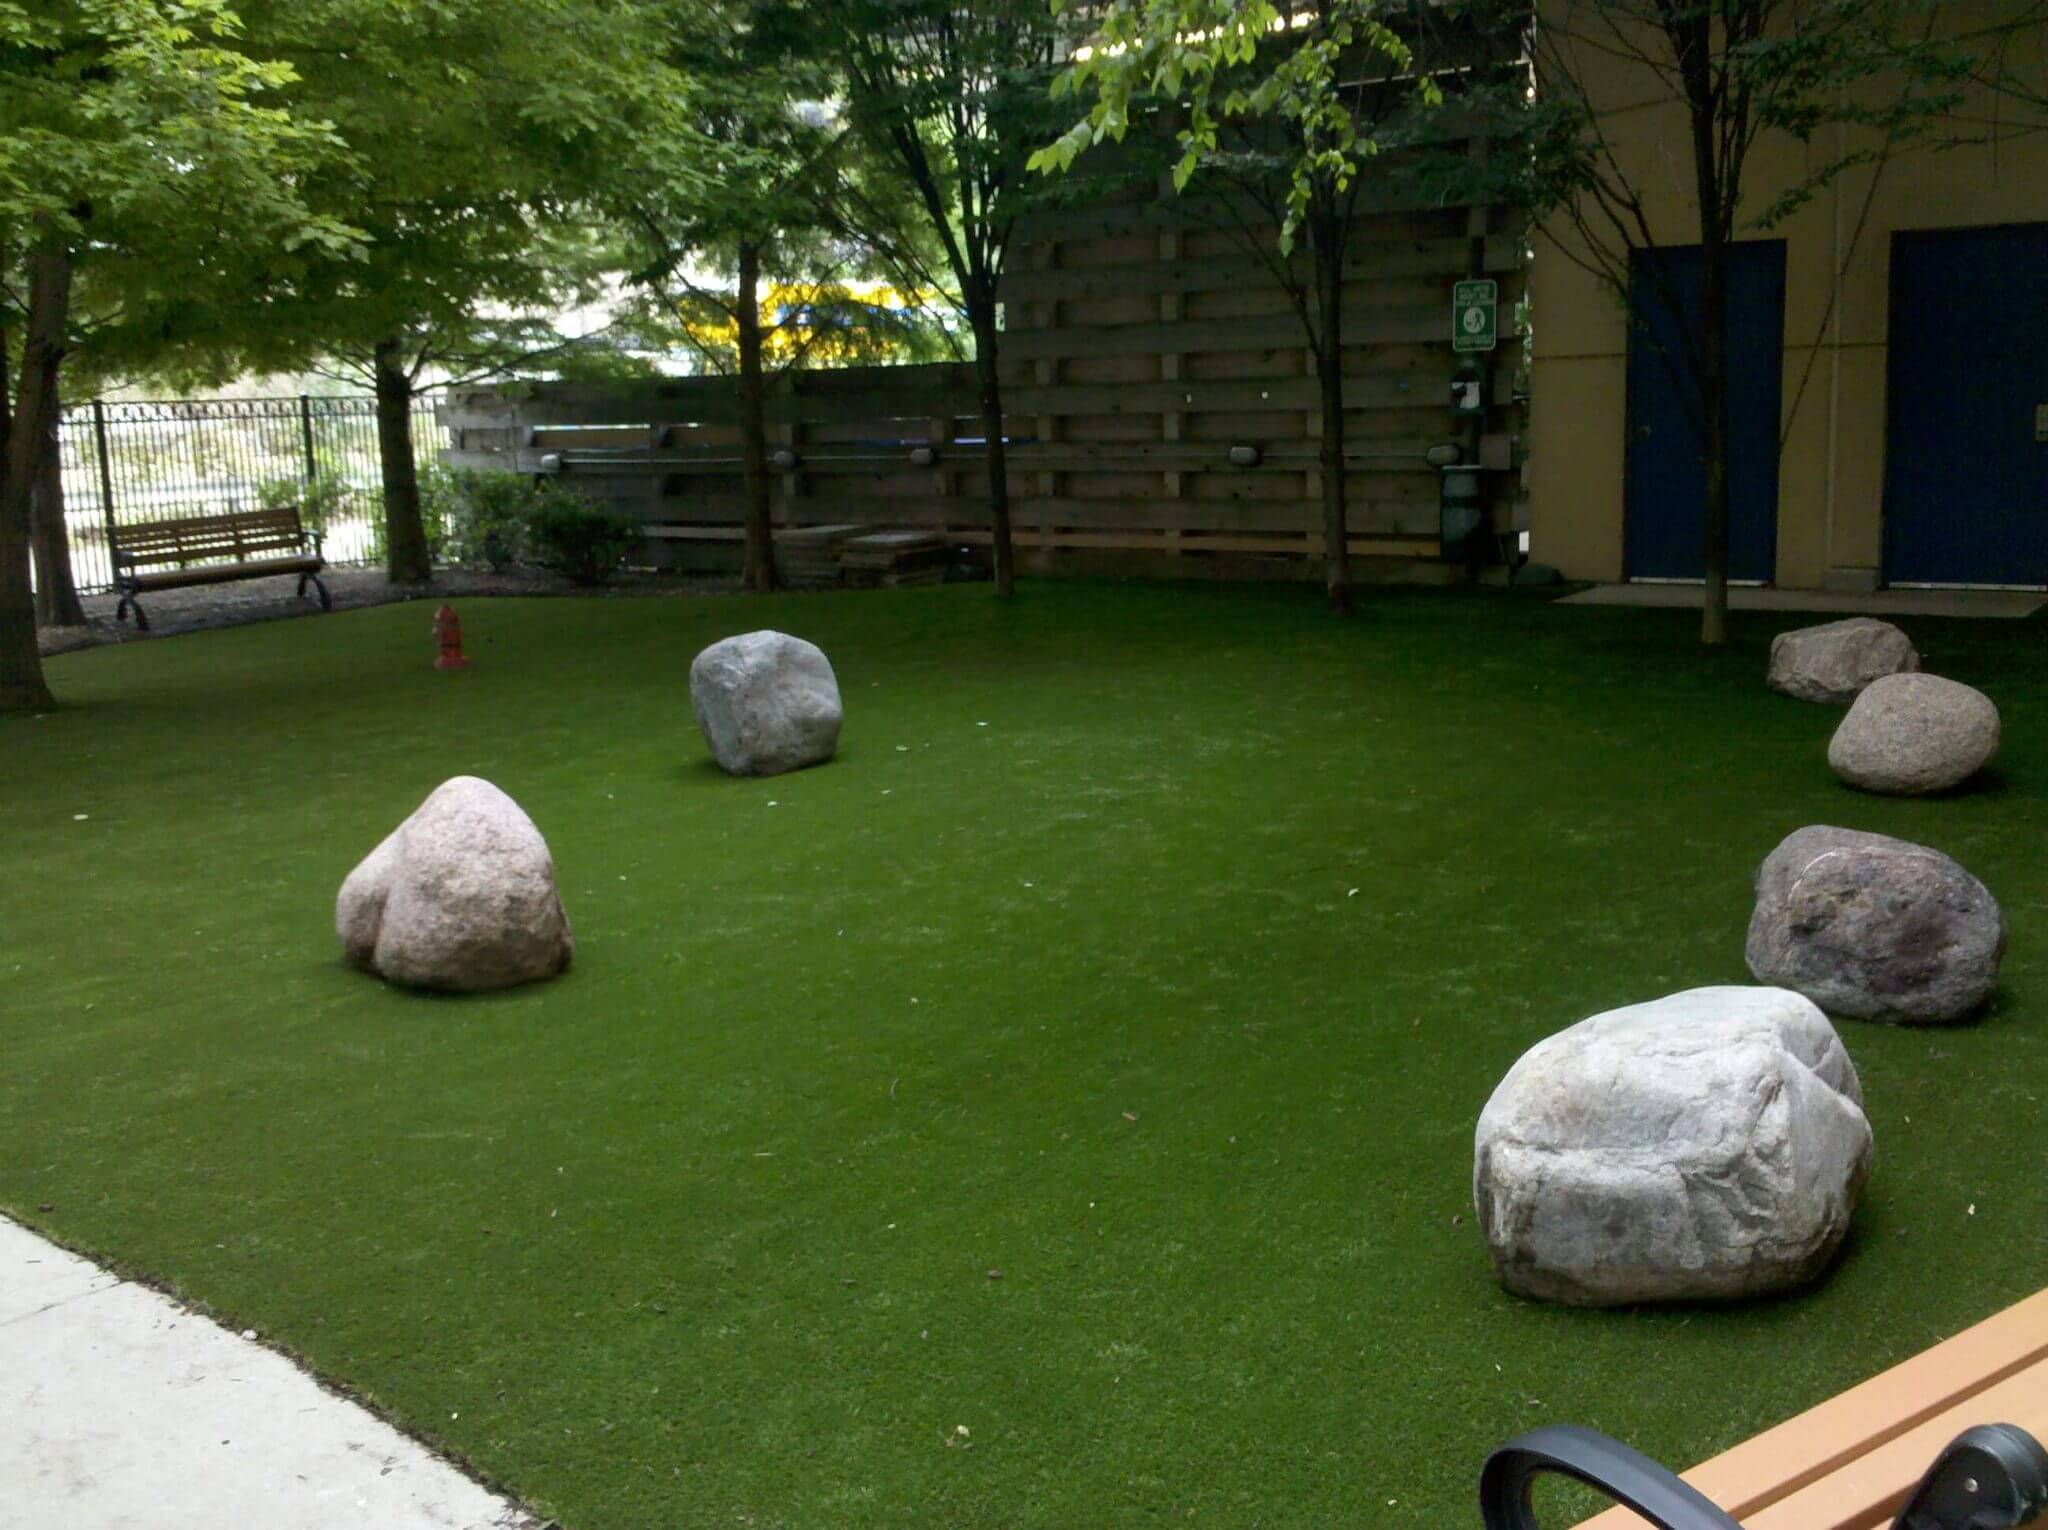 Some stones arranged in a Petgrass dog park.